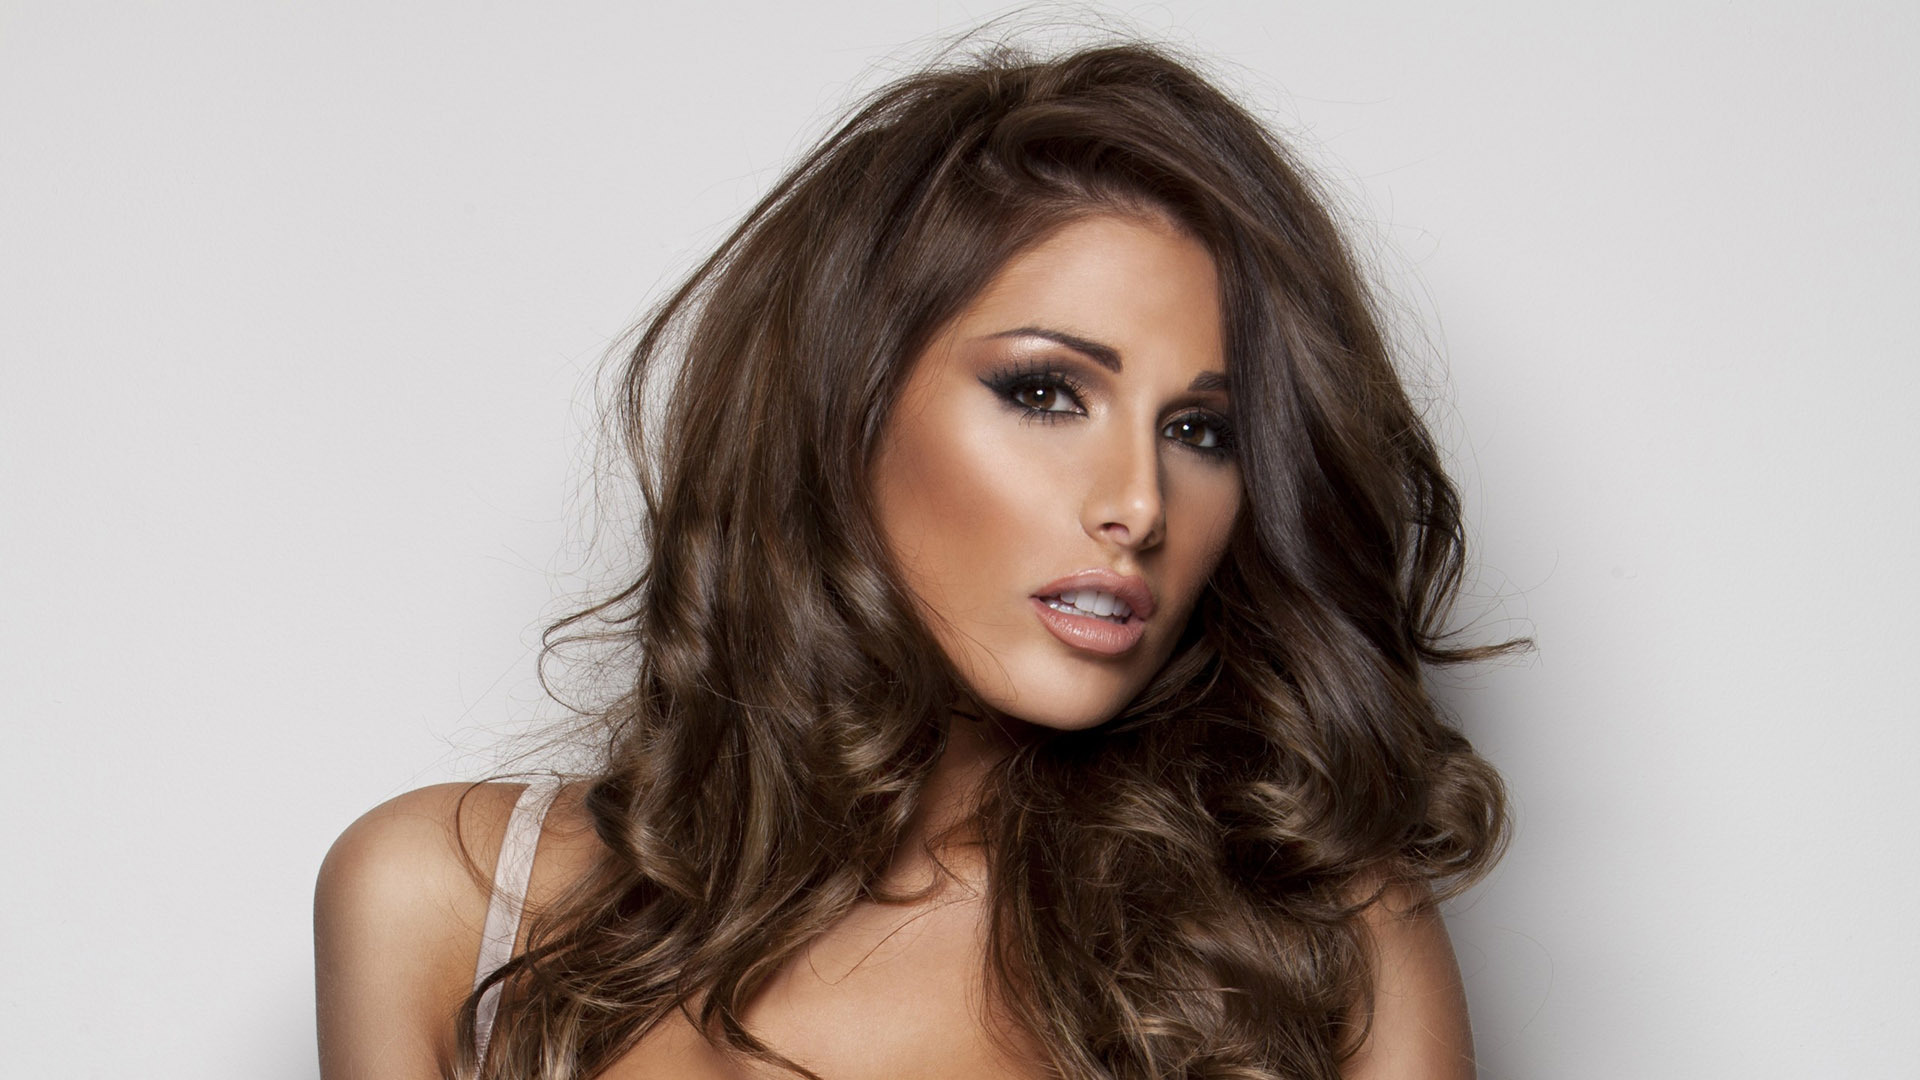 Lucy Pinder Wallpapers Images Photos Pictures Backgrounds